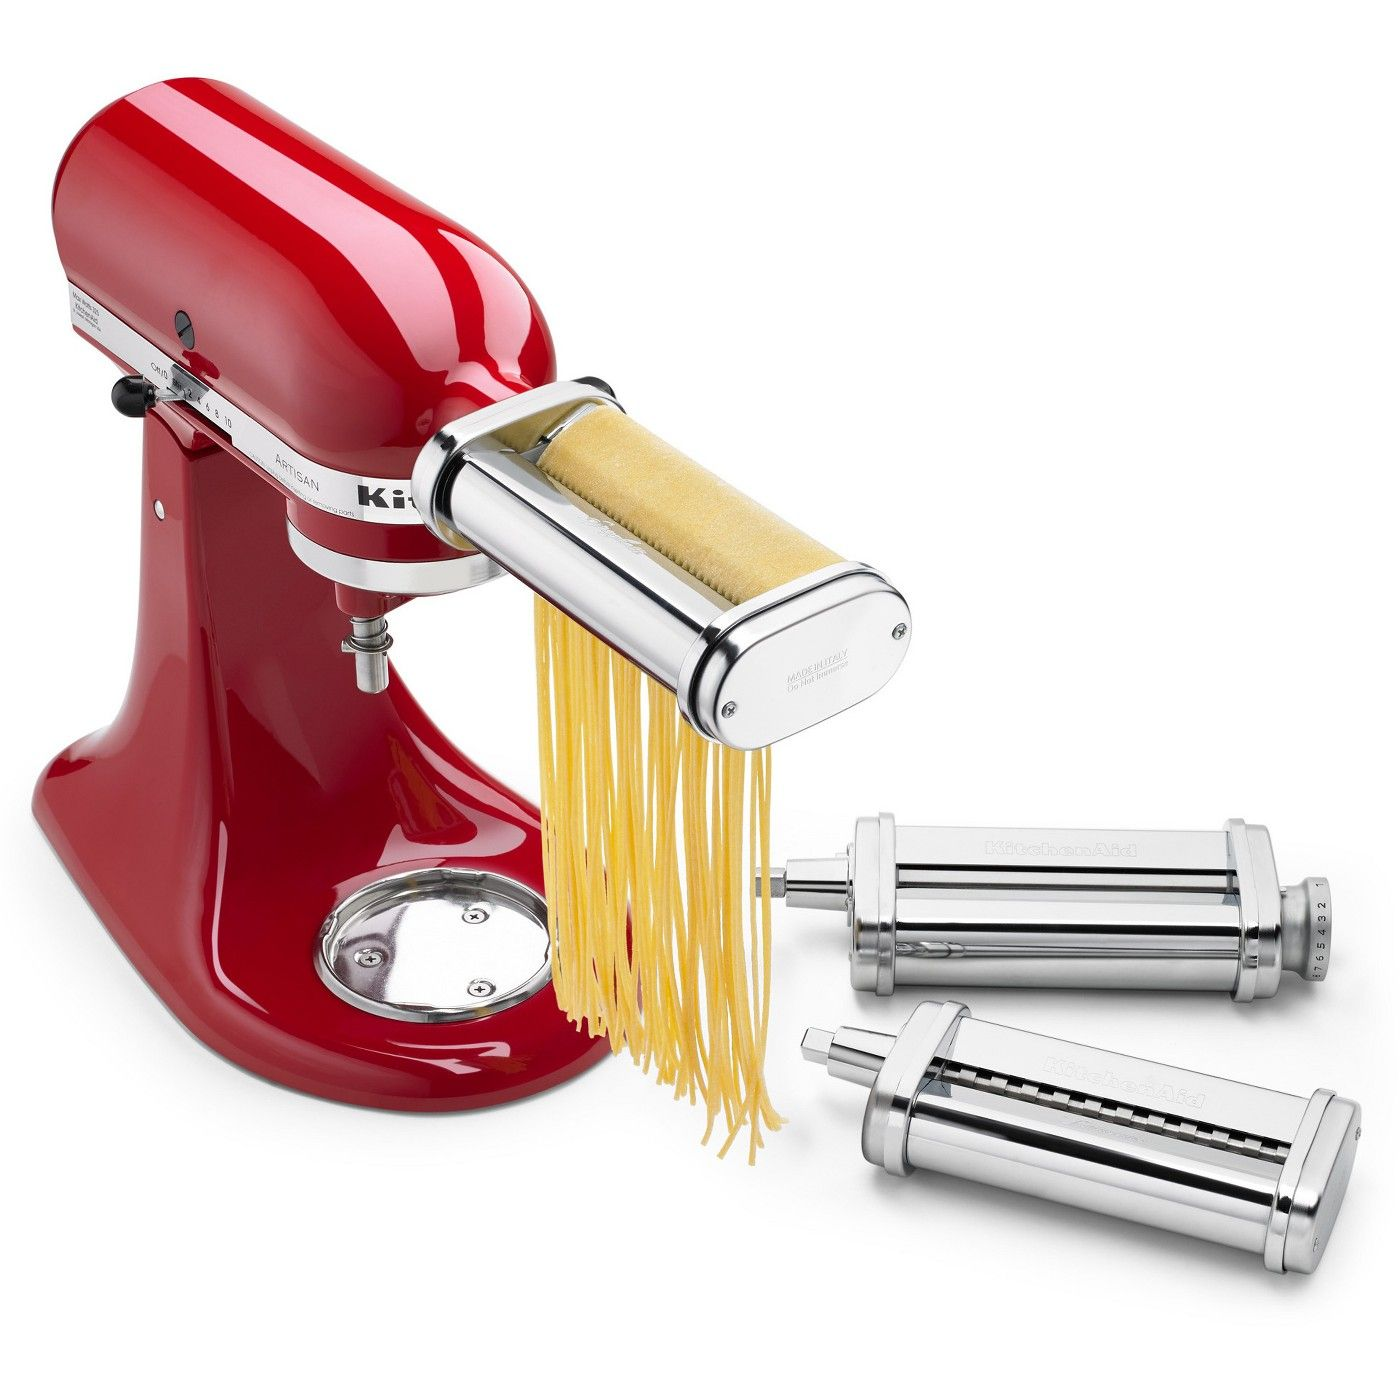 Kitchenaid Pasta Roller Attachment Ksmpra Image 1 Of 7 Wishlist